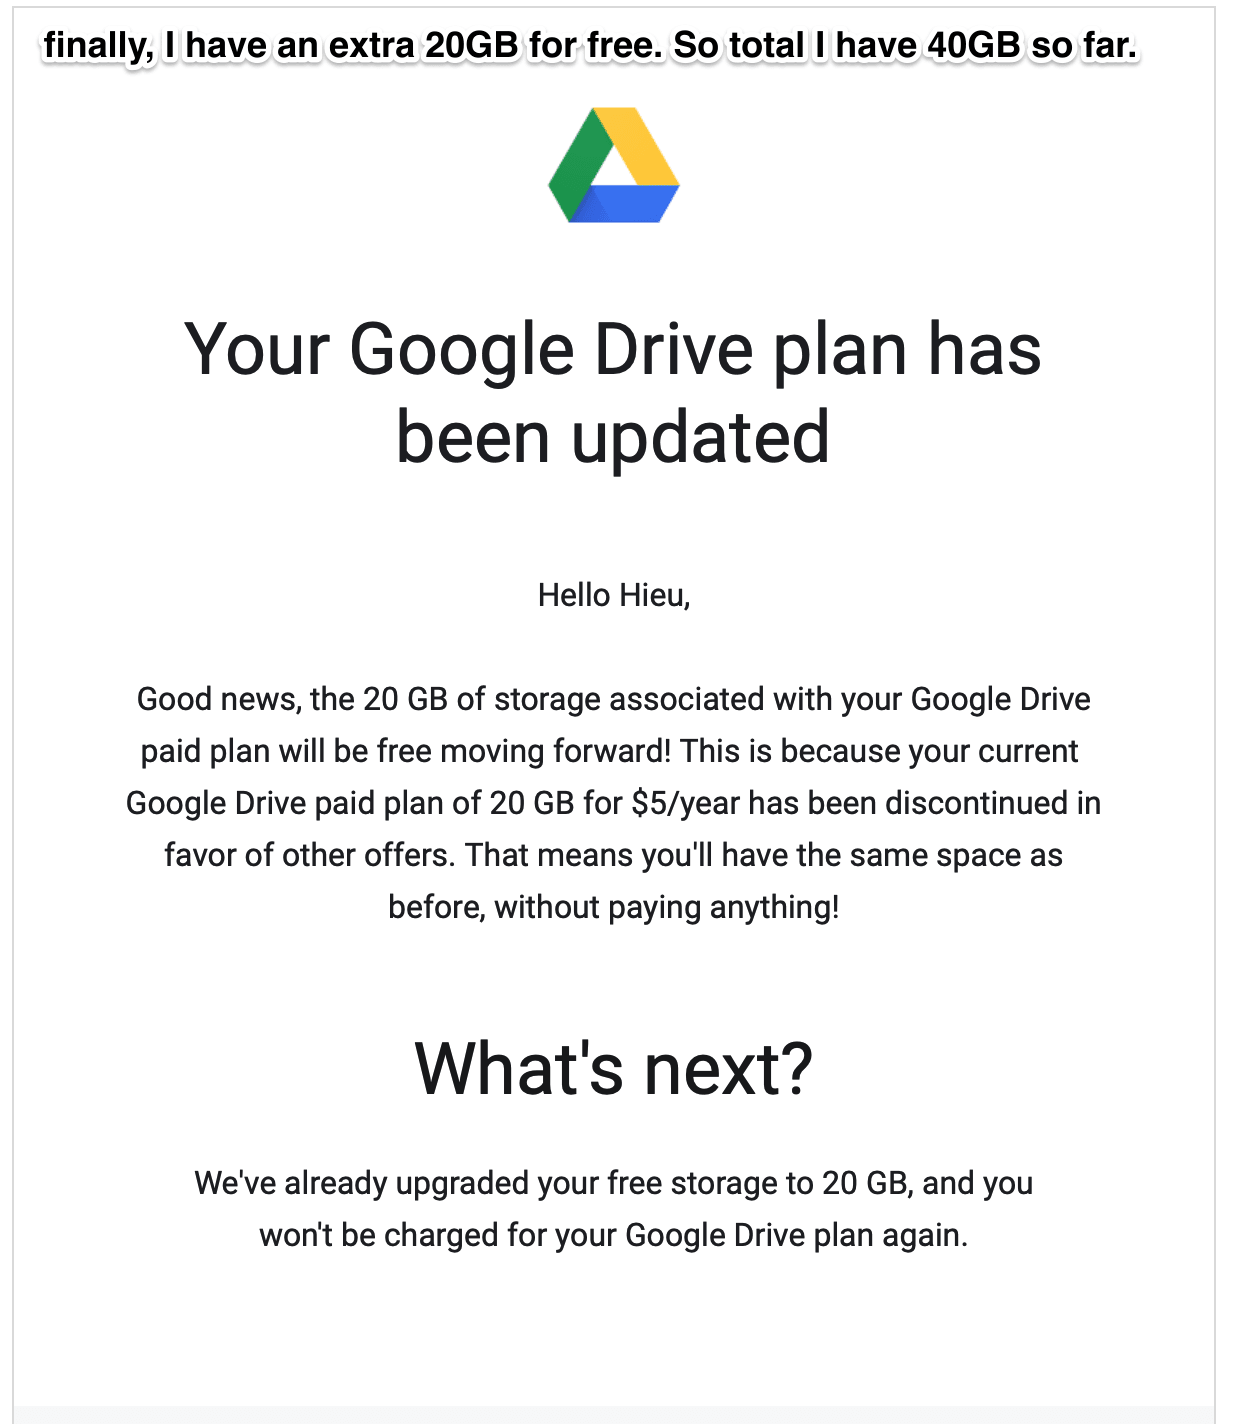 Google Drive's grandfathered 20GB plan price drops from $5 a year to free